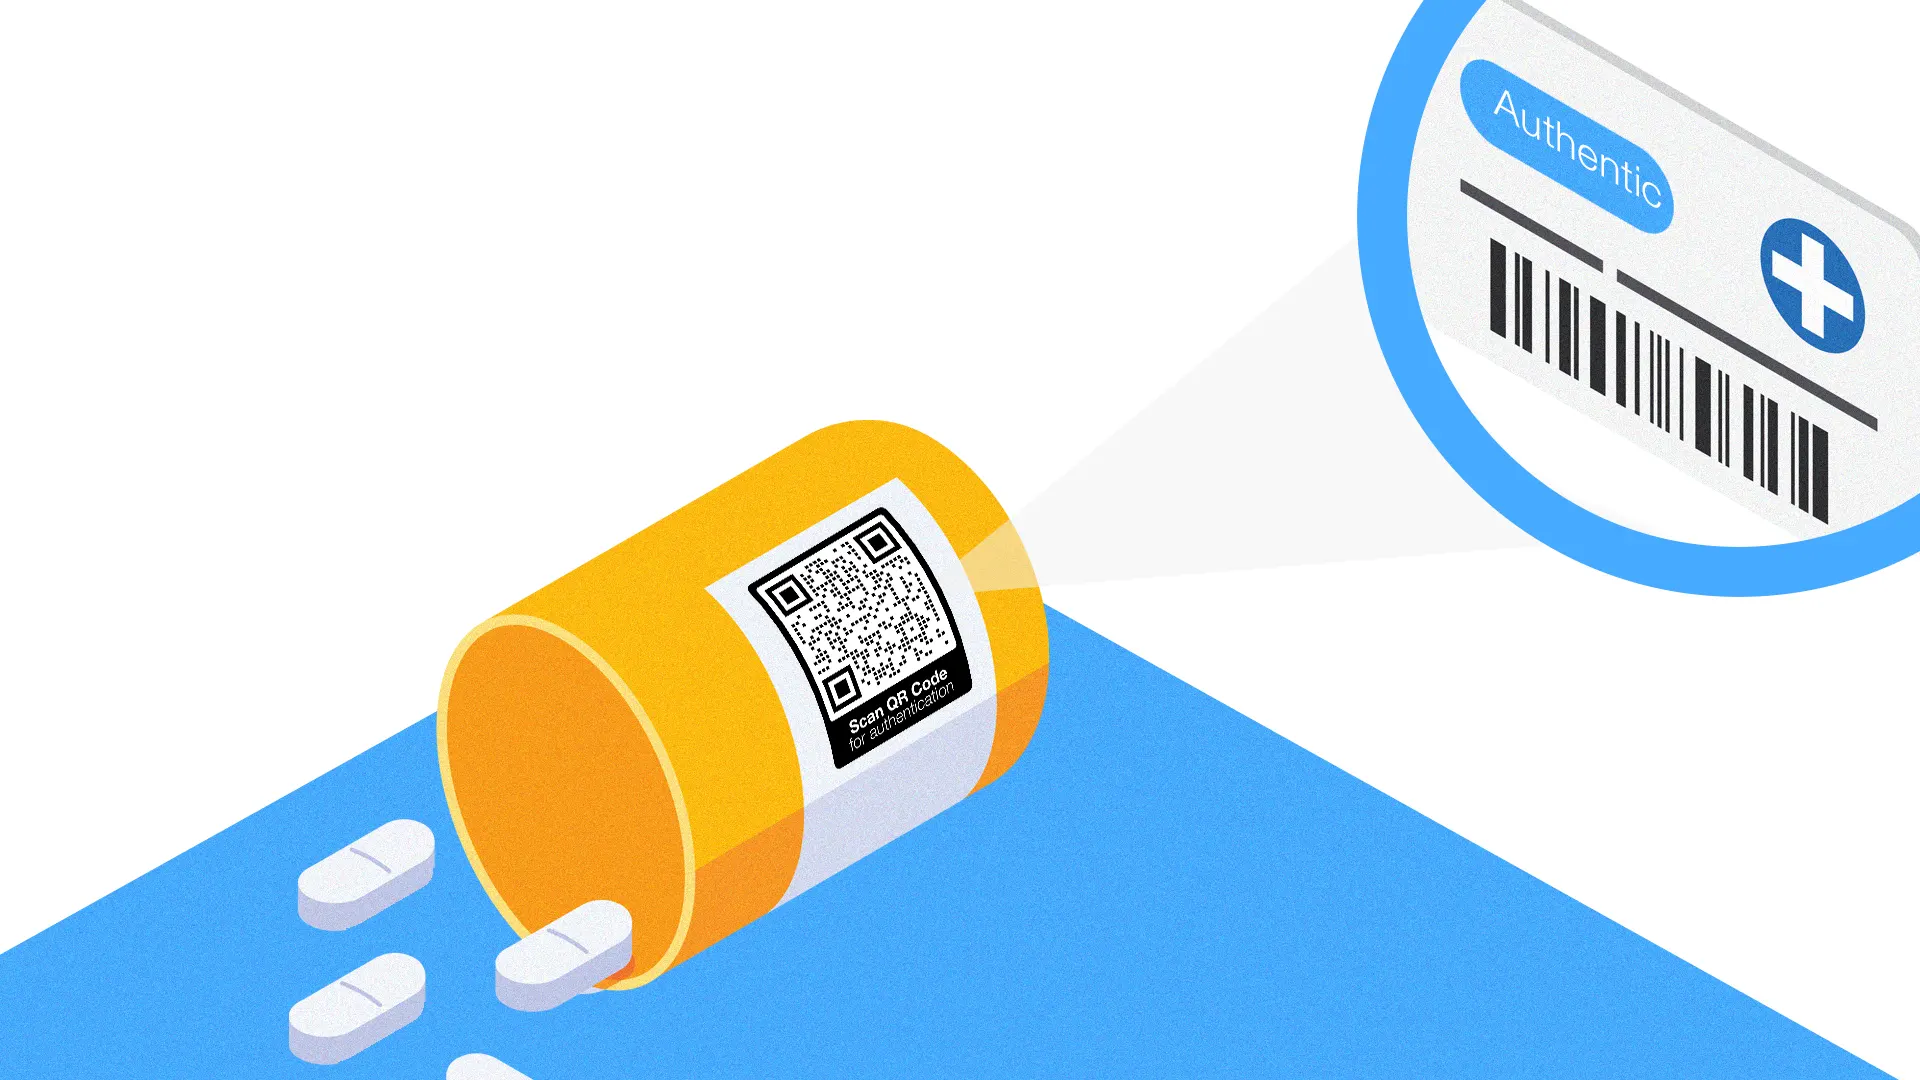 qr codes on drug packaging for authentication